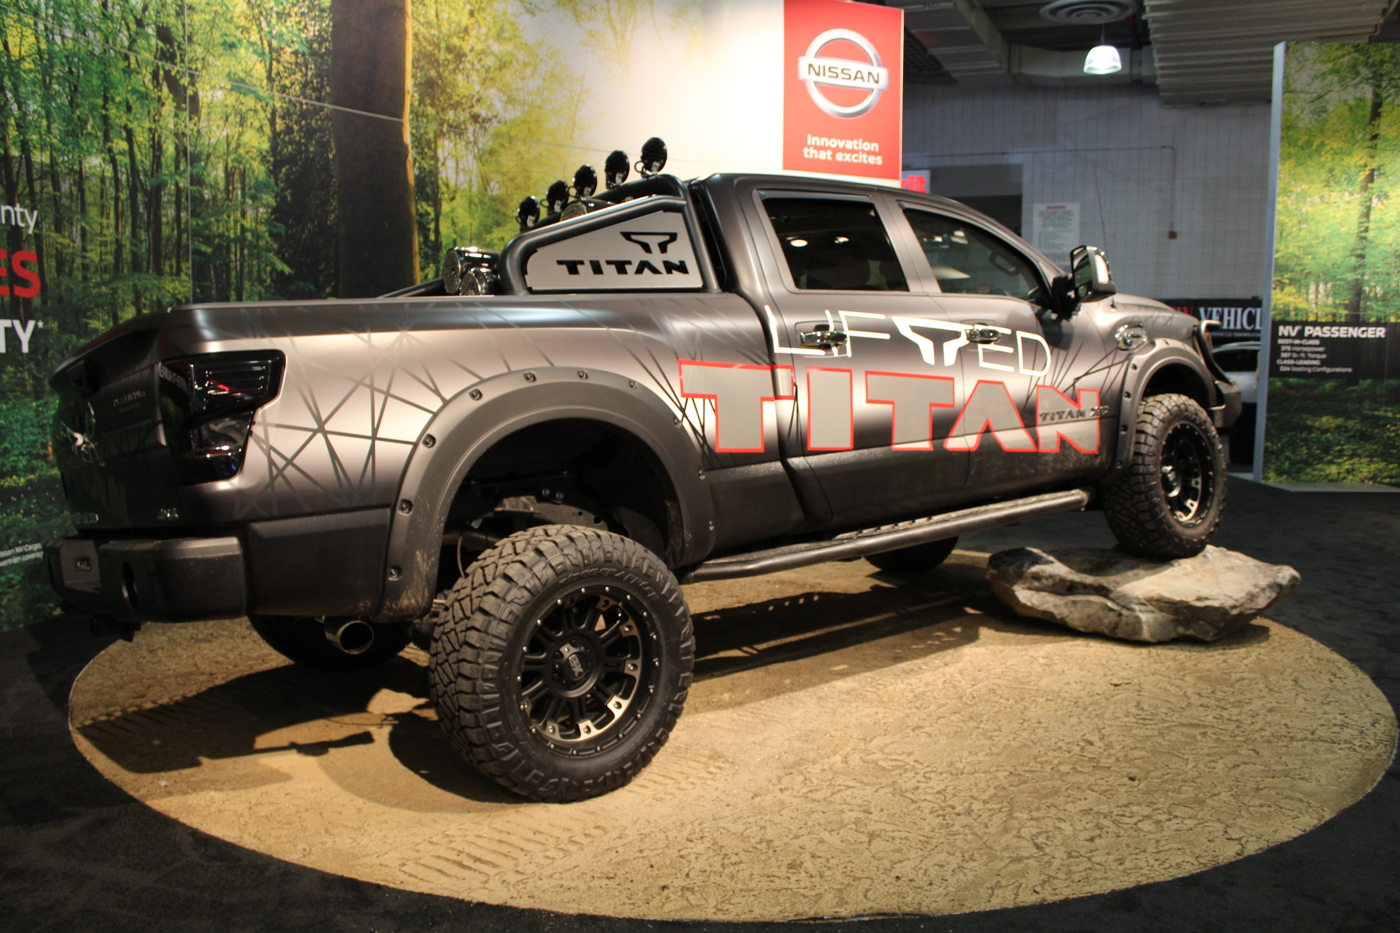 Nissan Titan Lifted Concept